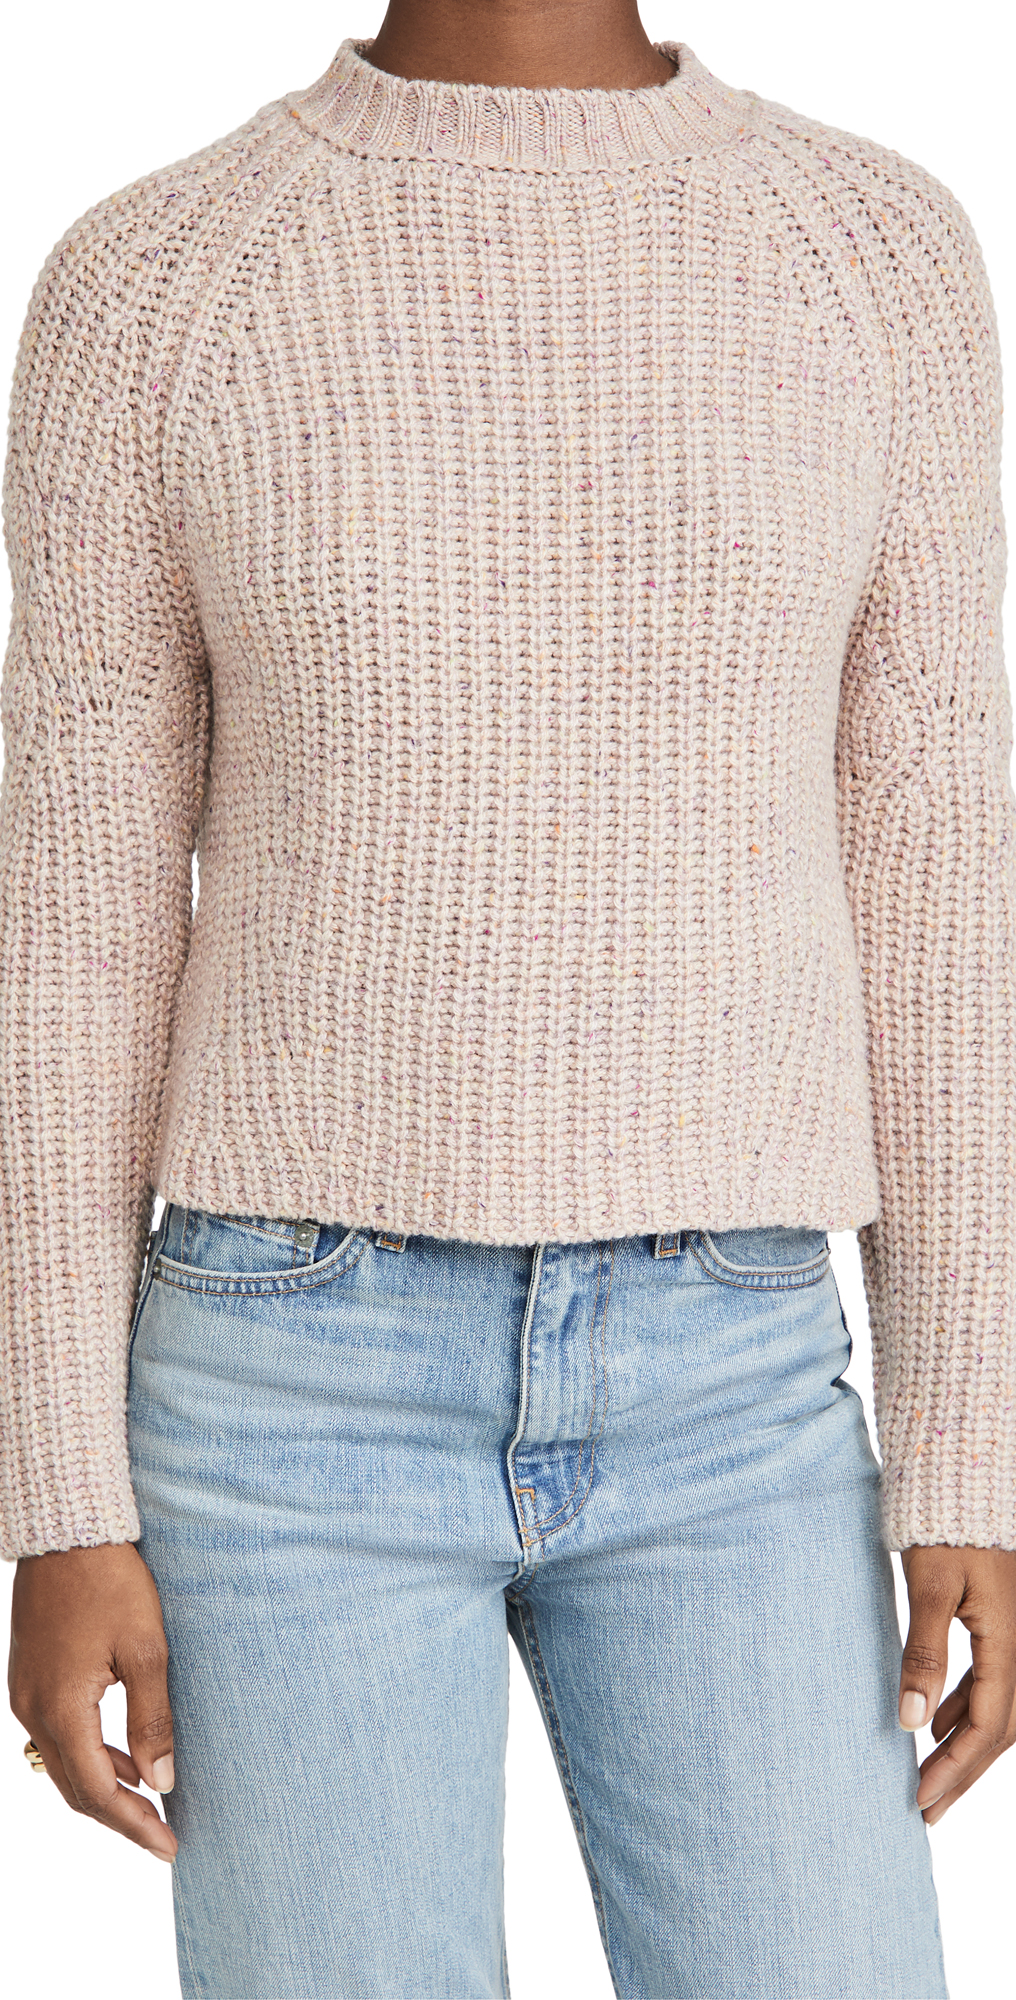 Brock Collection Maglia Sophie Cashmere Sweater